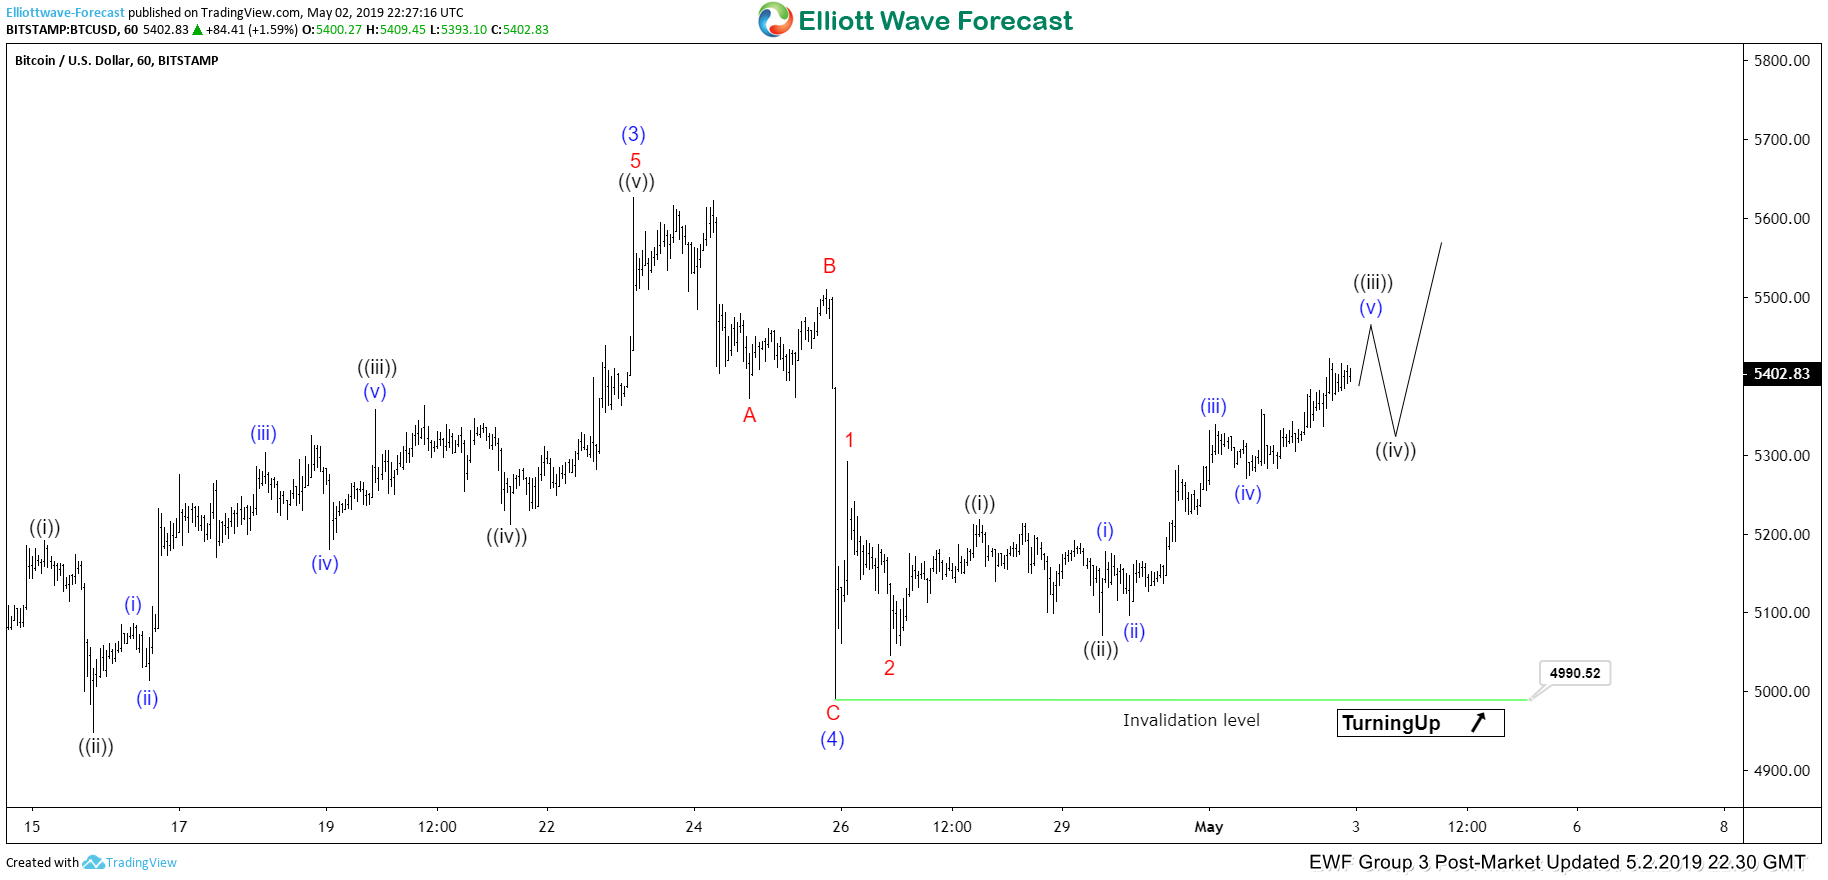 Elliott Wave View: Bitcoin Extending Higher in Wave 5